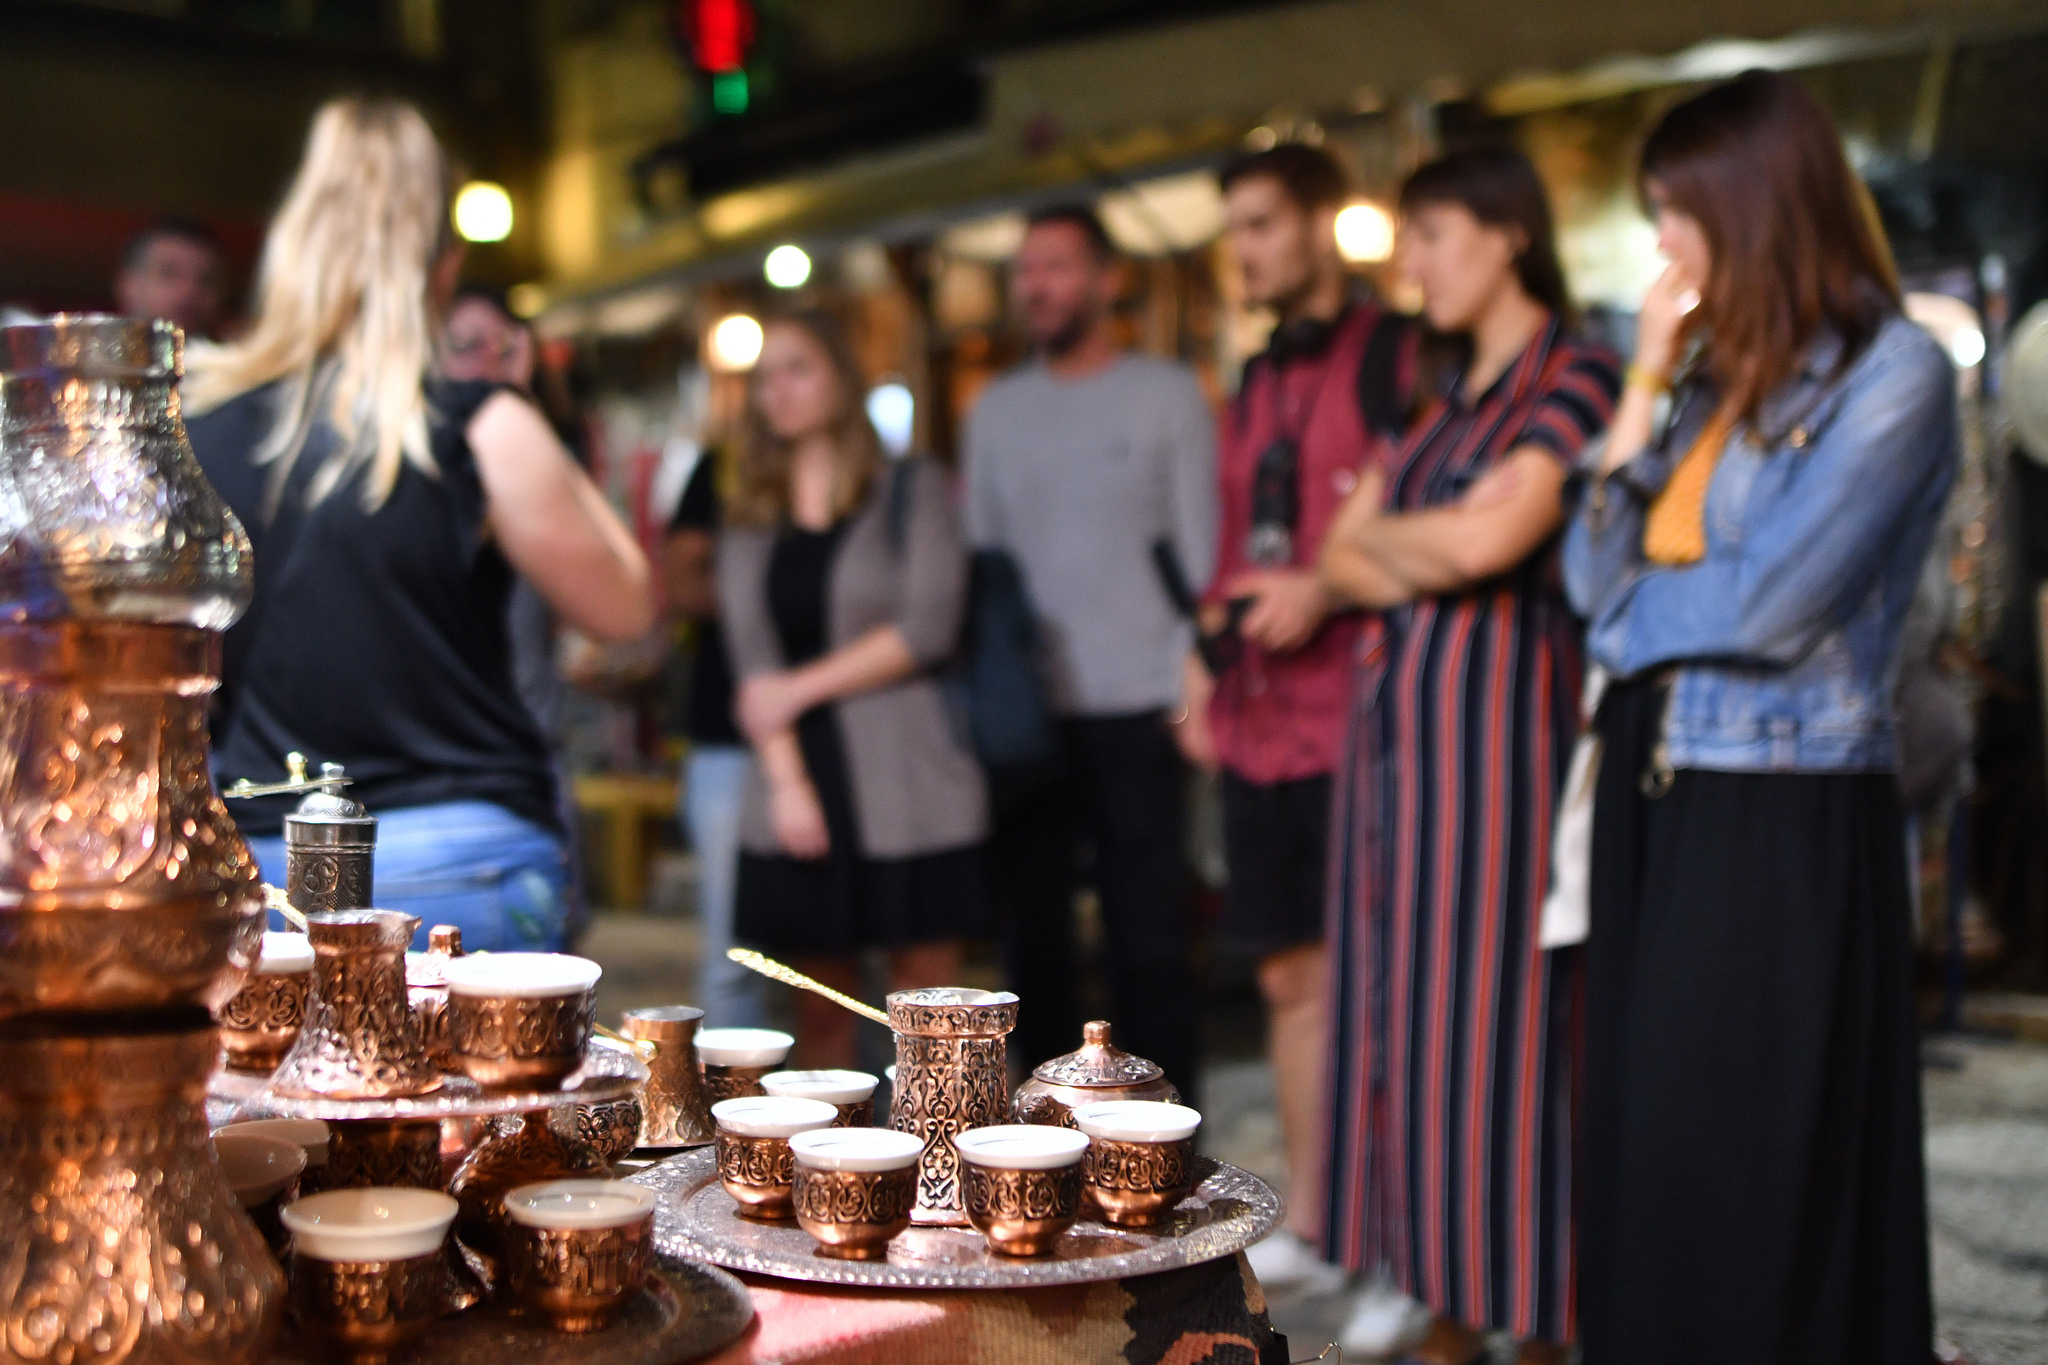 Bosnians are very, very proud of their coffee. Here, in the front, some Bosnian coffee pots (džezva) at the central market of Sarajevo. Credit: Kemal Softić/iac Berlin